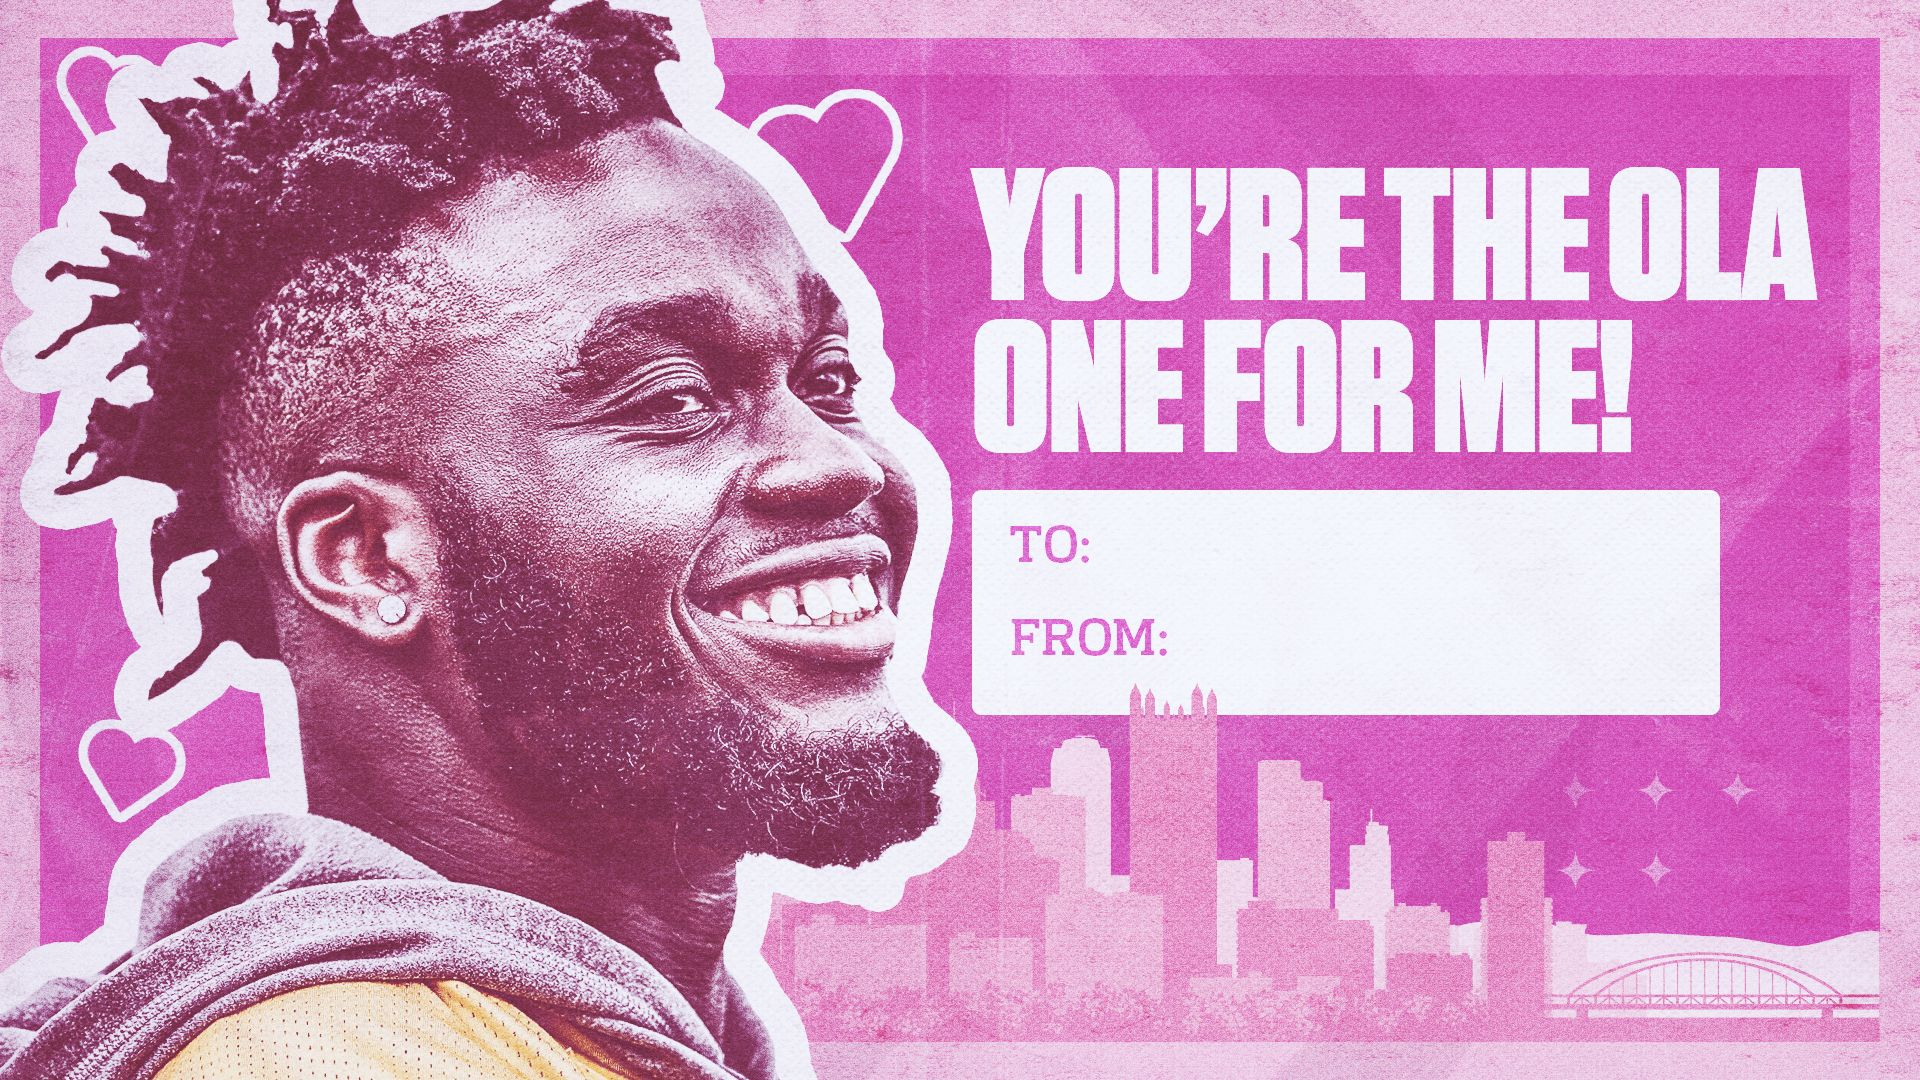 021420-Valentine's-Day---You're-the-Ola-One-For-Me